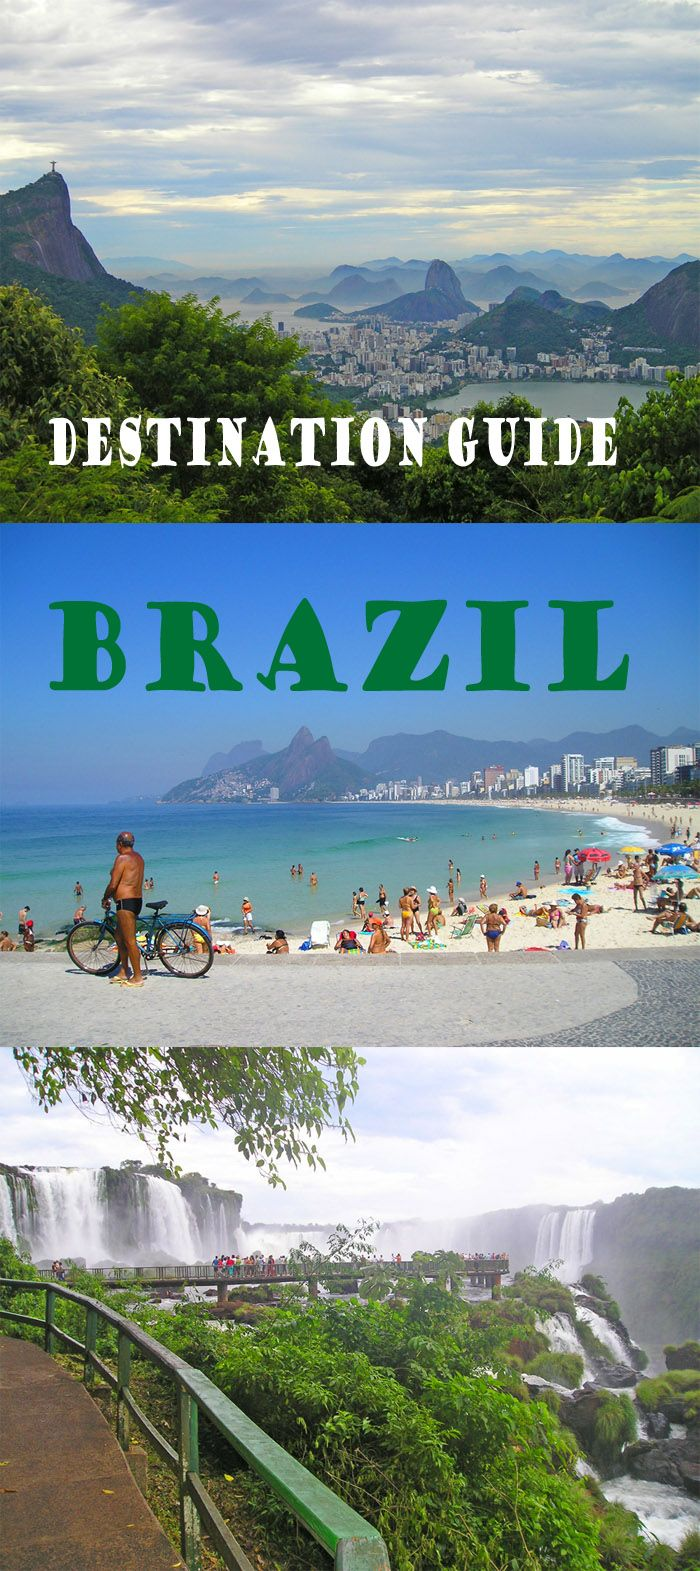 Destination Guide - Brazil. Everything you need to know and places to go! http://bbqboy.net/brazil-guide-travel-tips/ #brazil #destinationguide